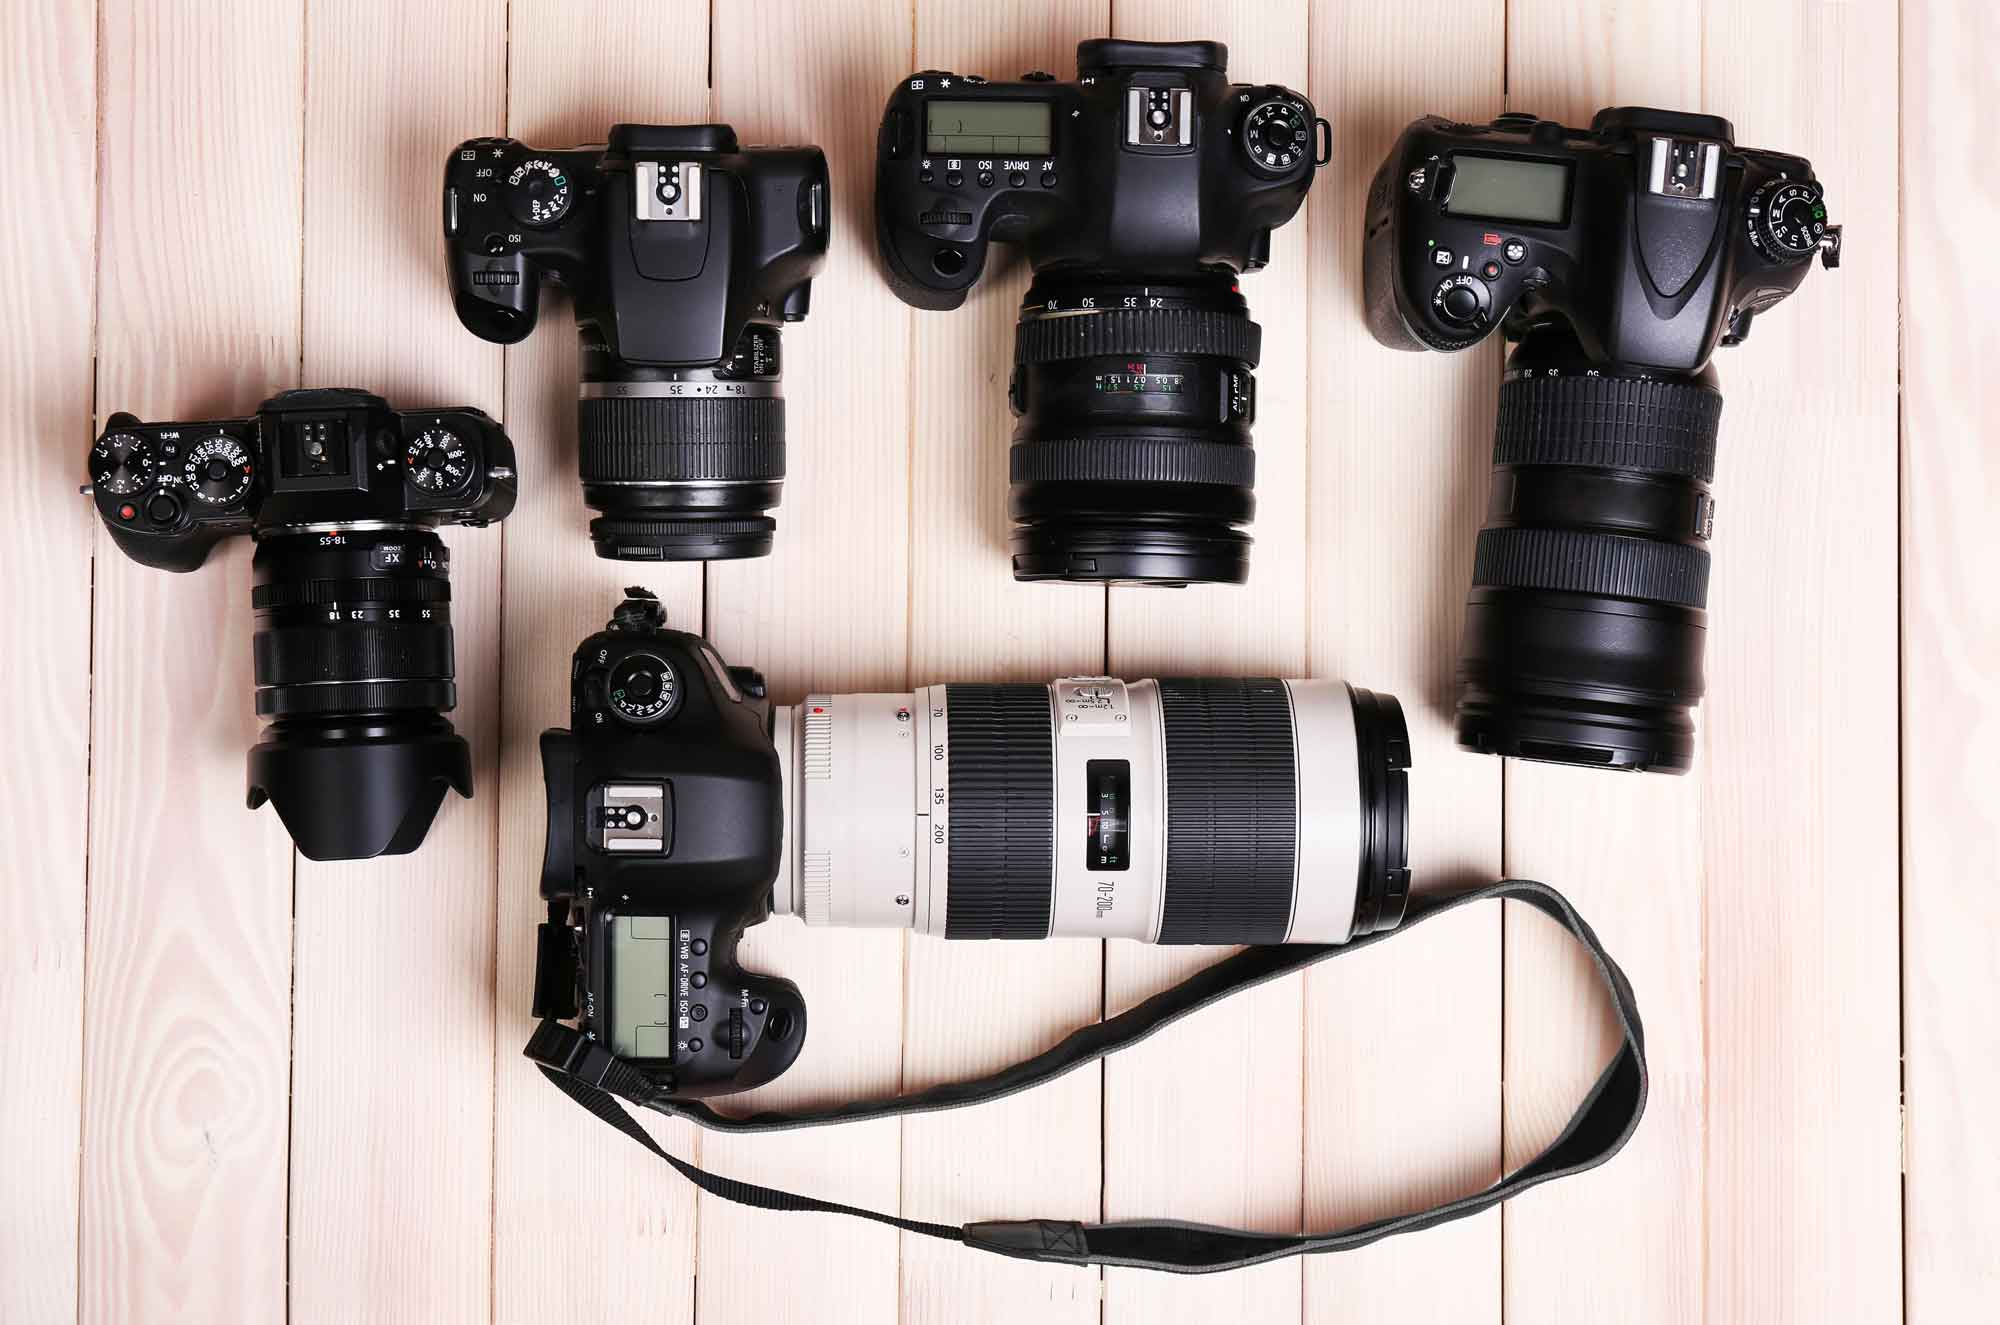 How to Sell or Trade Your Used Camera Equipment - ALC